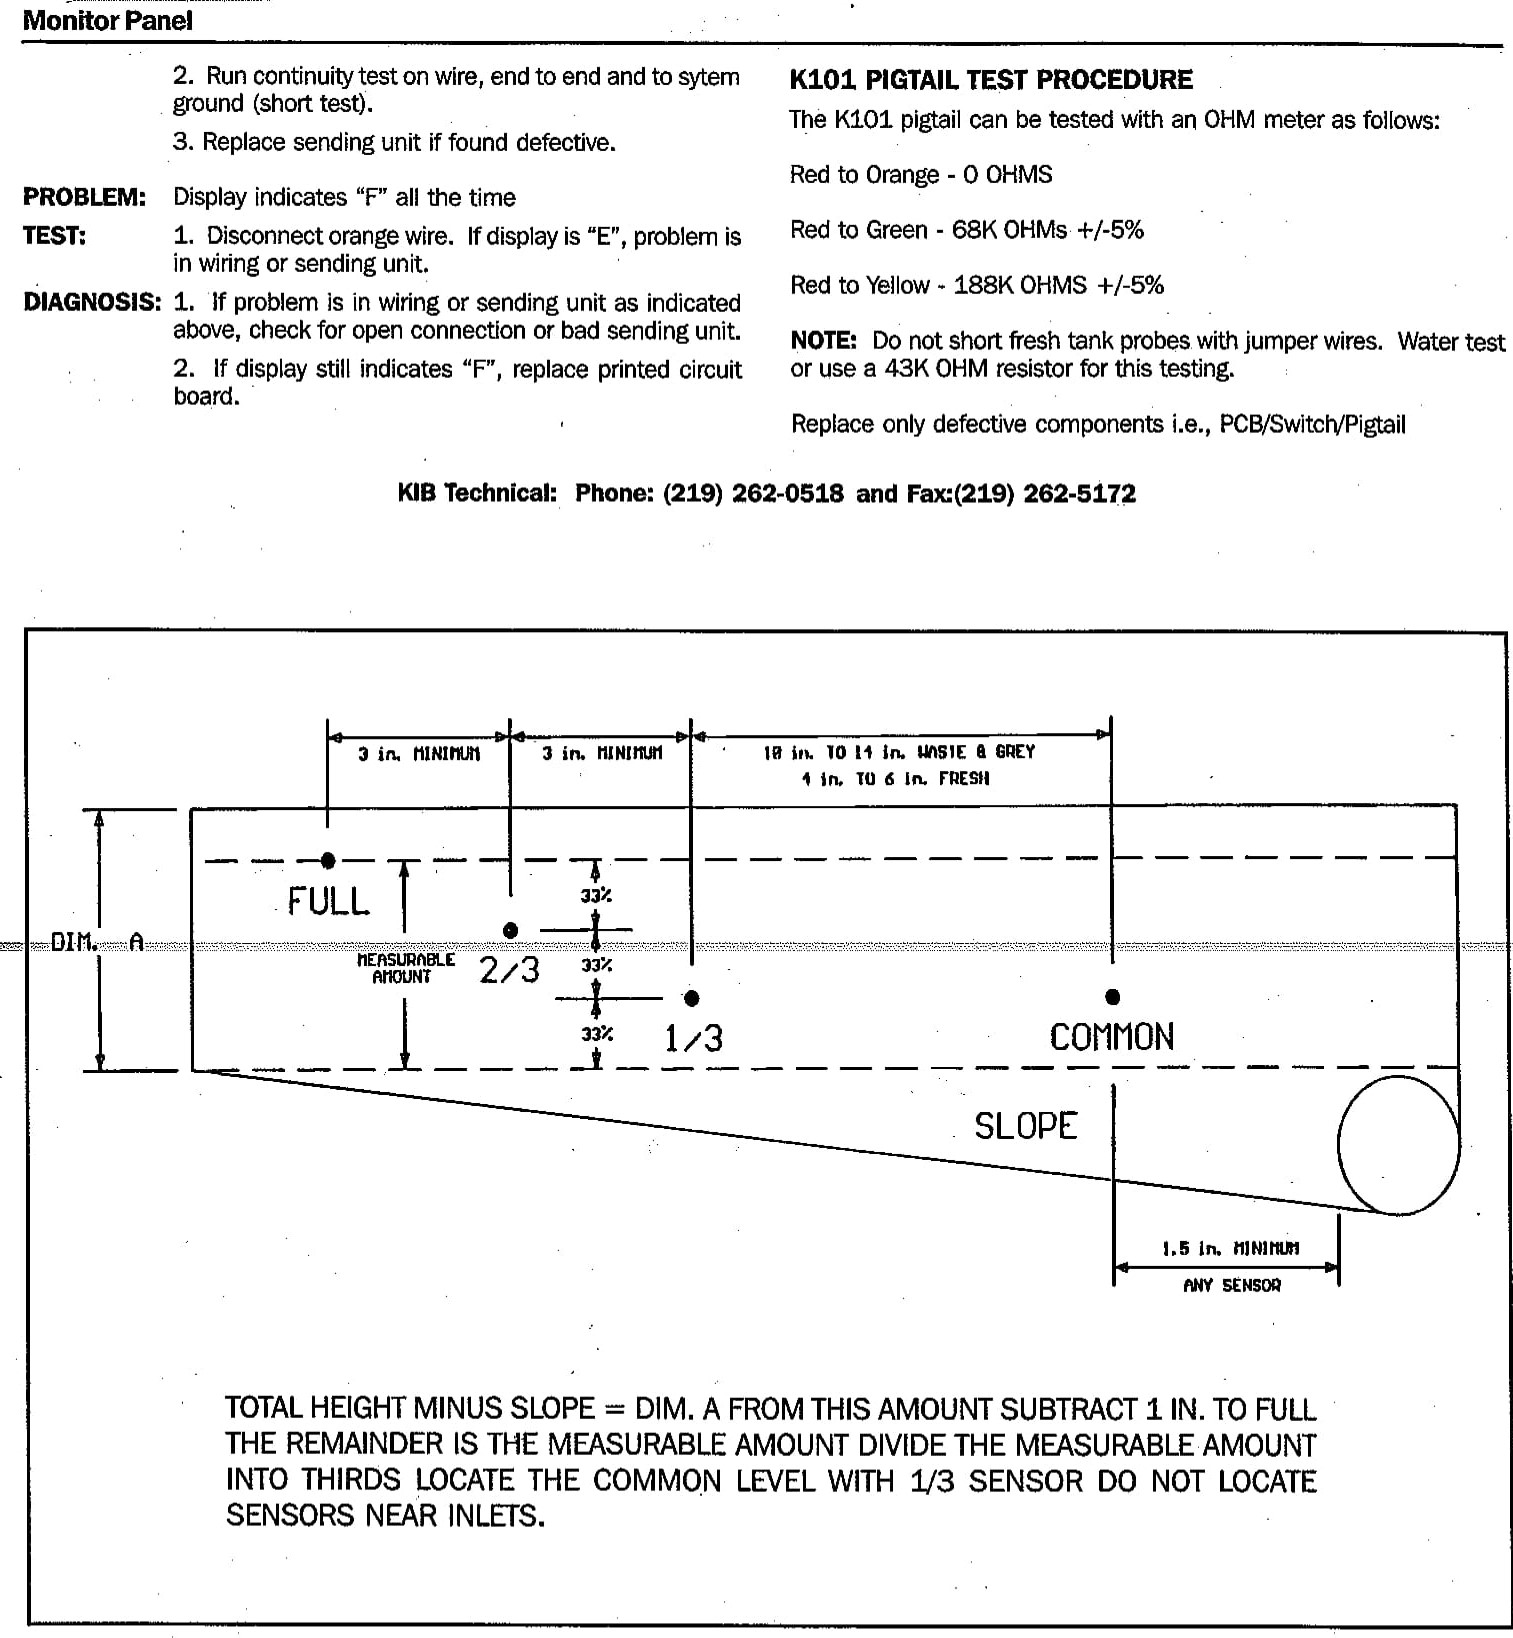 Tank Scooter Wiring Diagram from d3d71ba2asa5oz.cloudfront.net